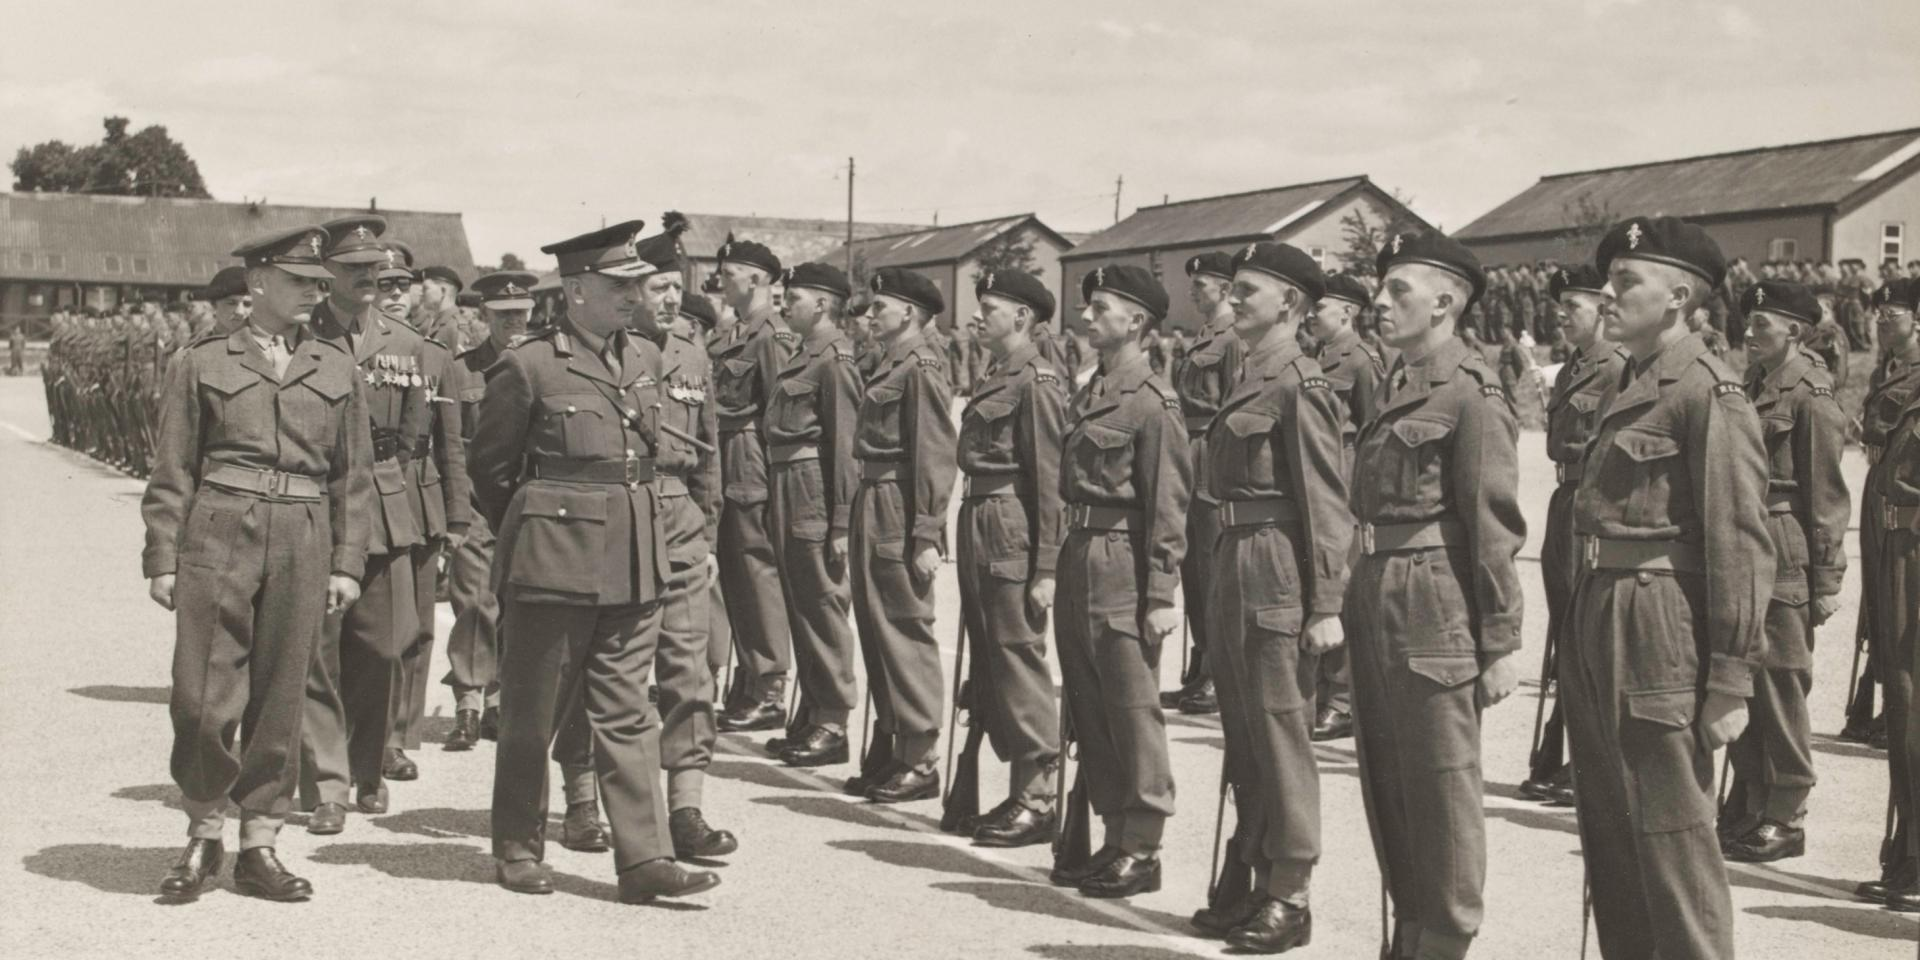 Major-General S W Joslin inspecting the passing out parade of 'C' Company, Royal Electrical and Mechanical Engineers, Honiton Camp, 1952